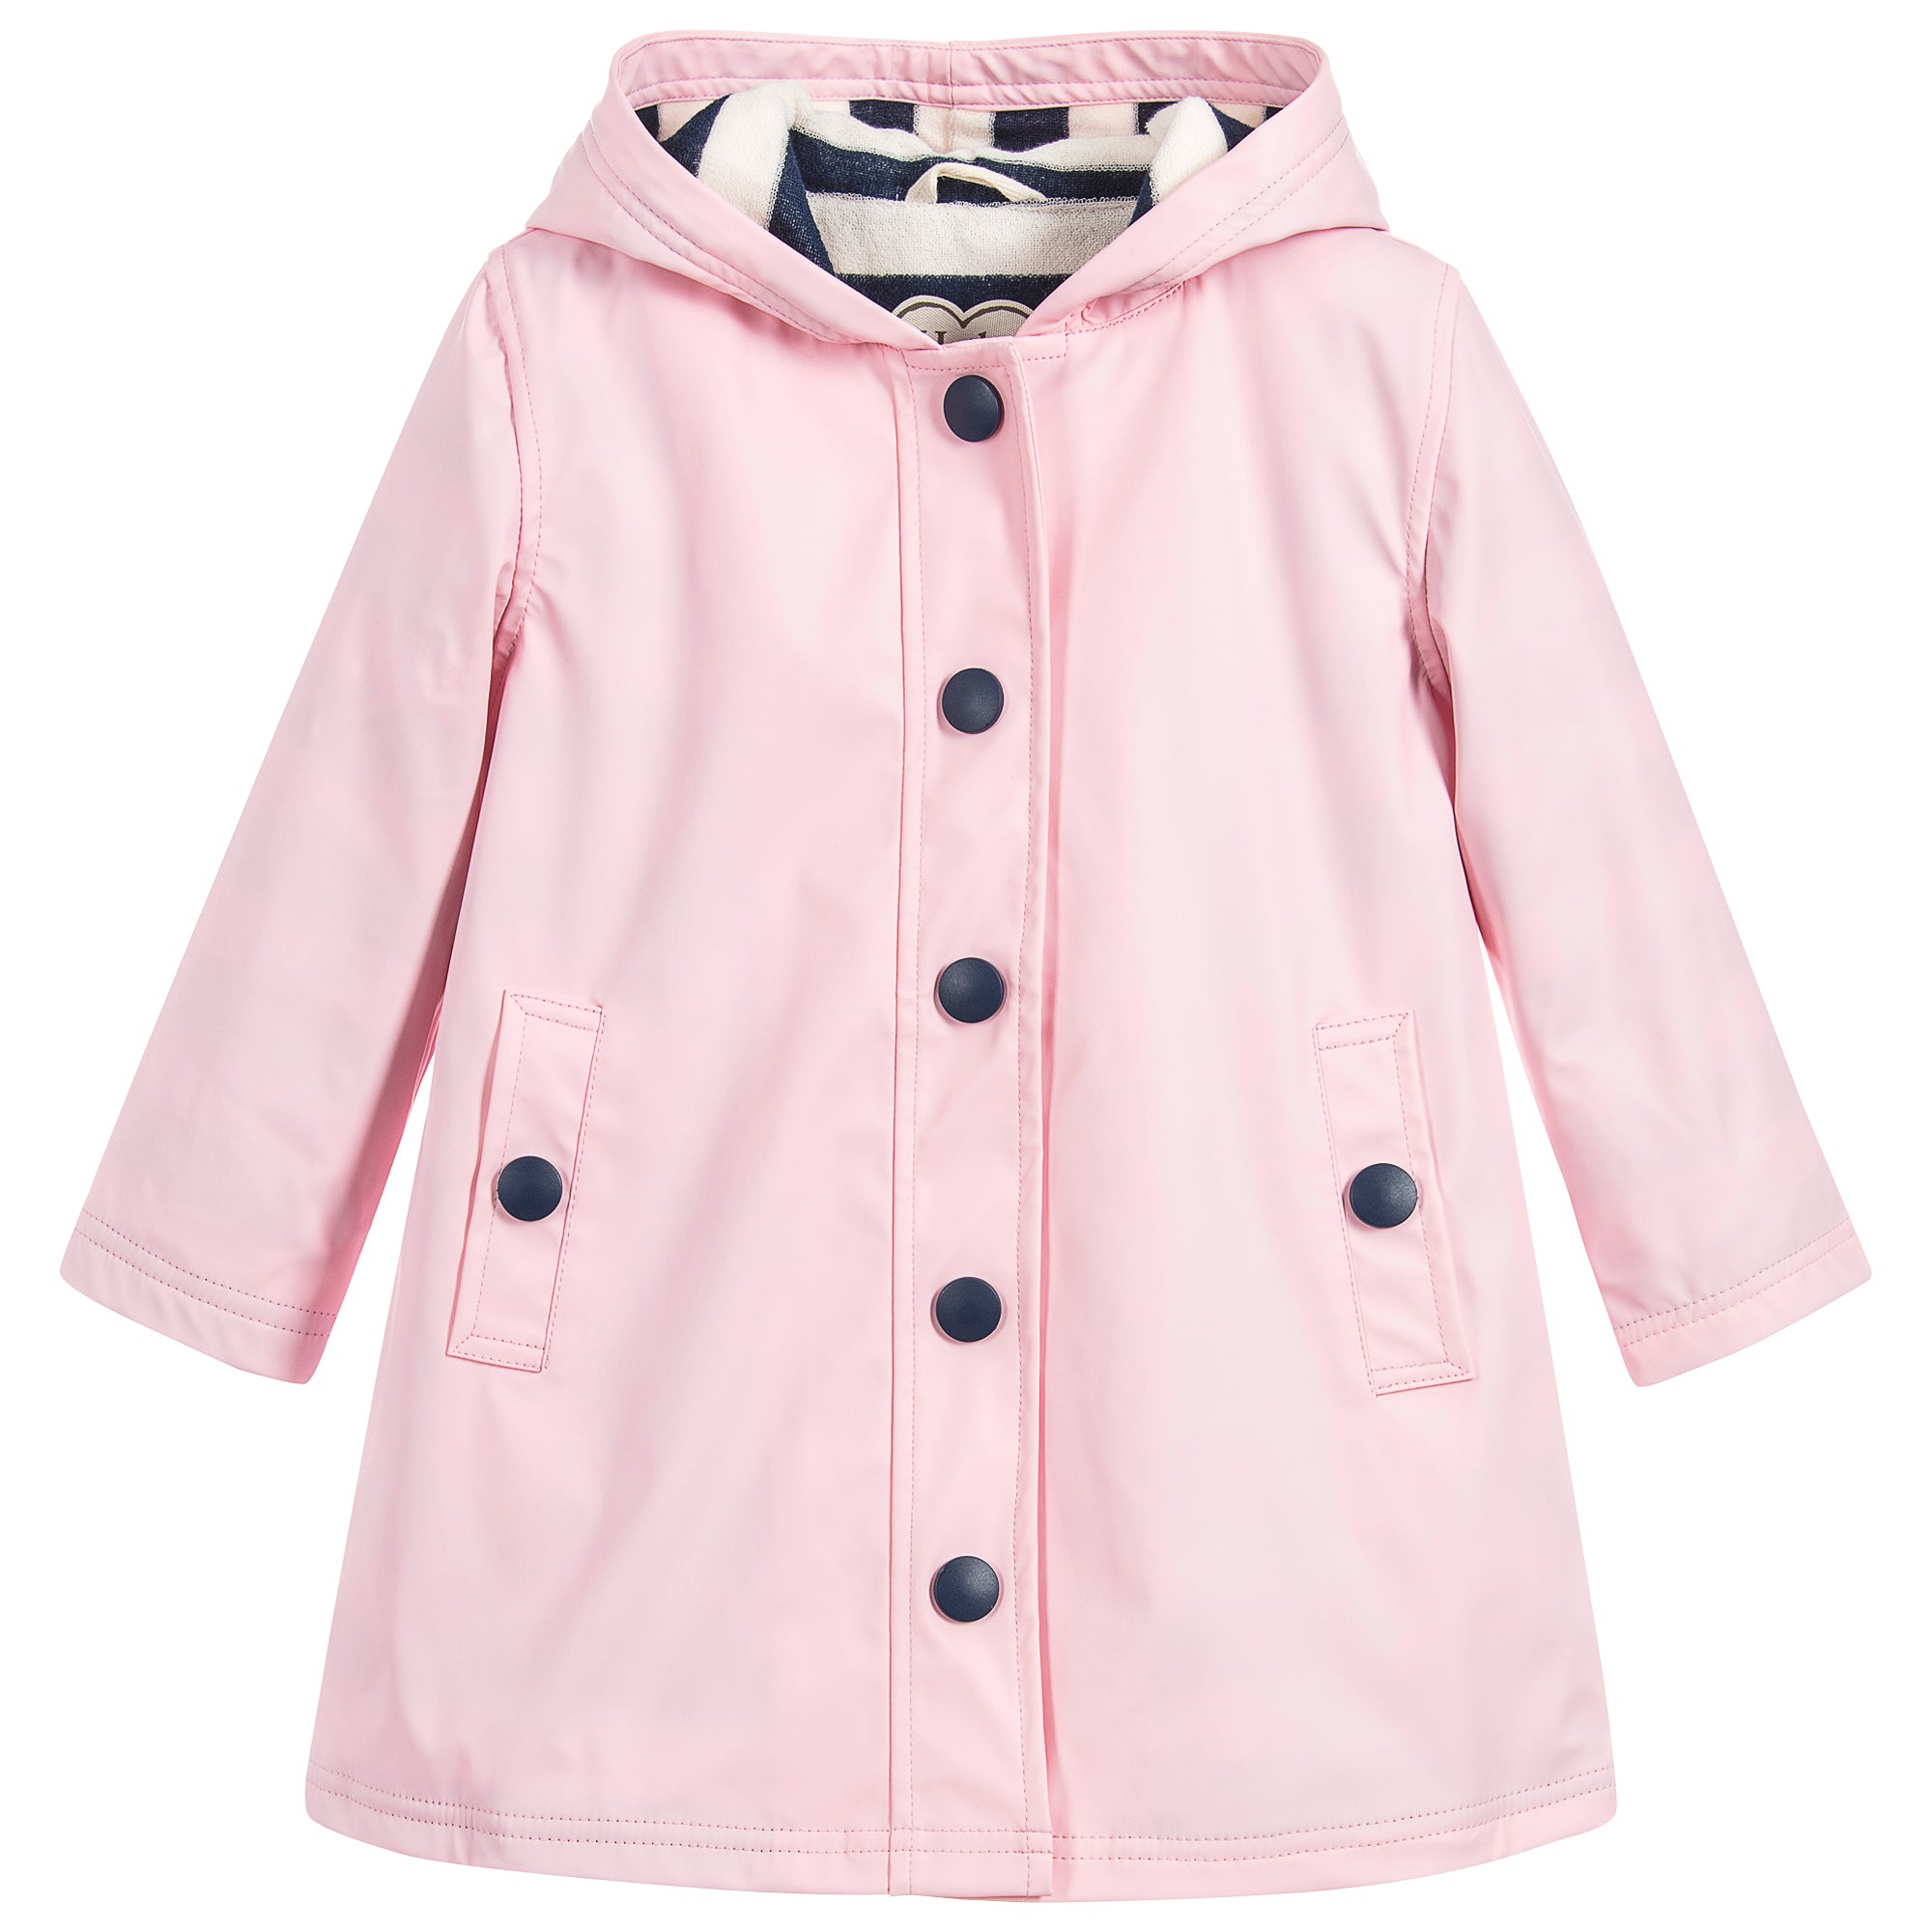 Hatley Pink Raincoat Rc8pink248